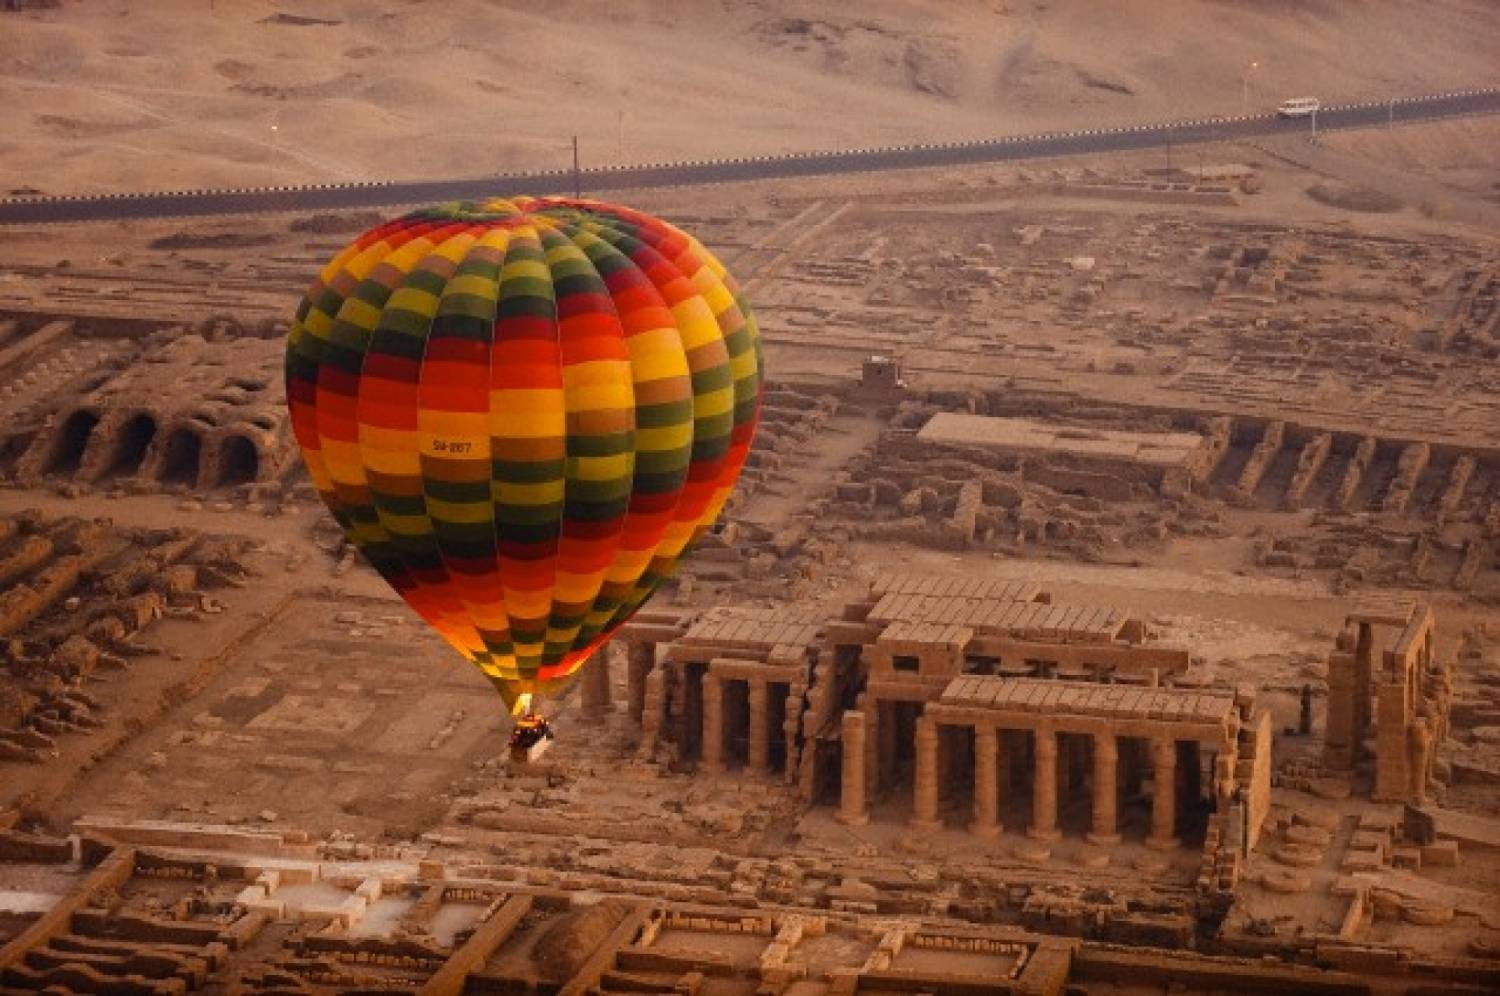 Hot air balloon carrying tourists crashes in Egypt